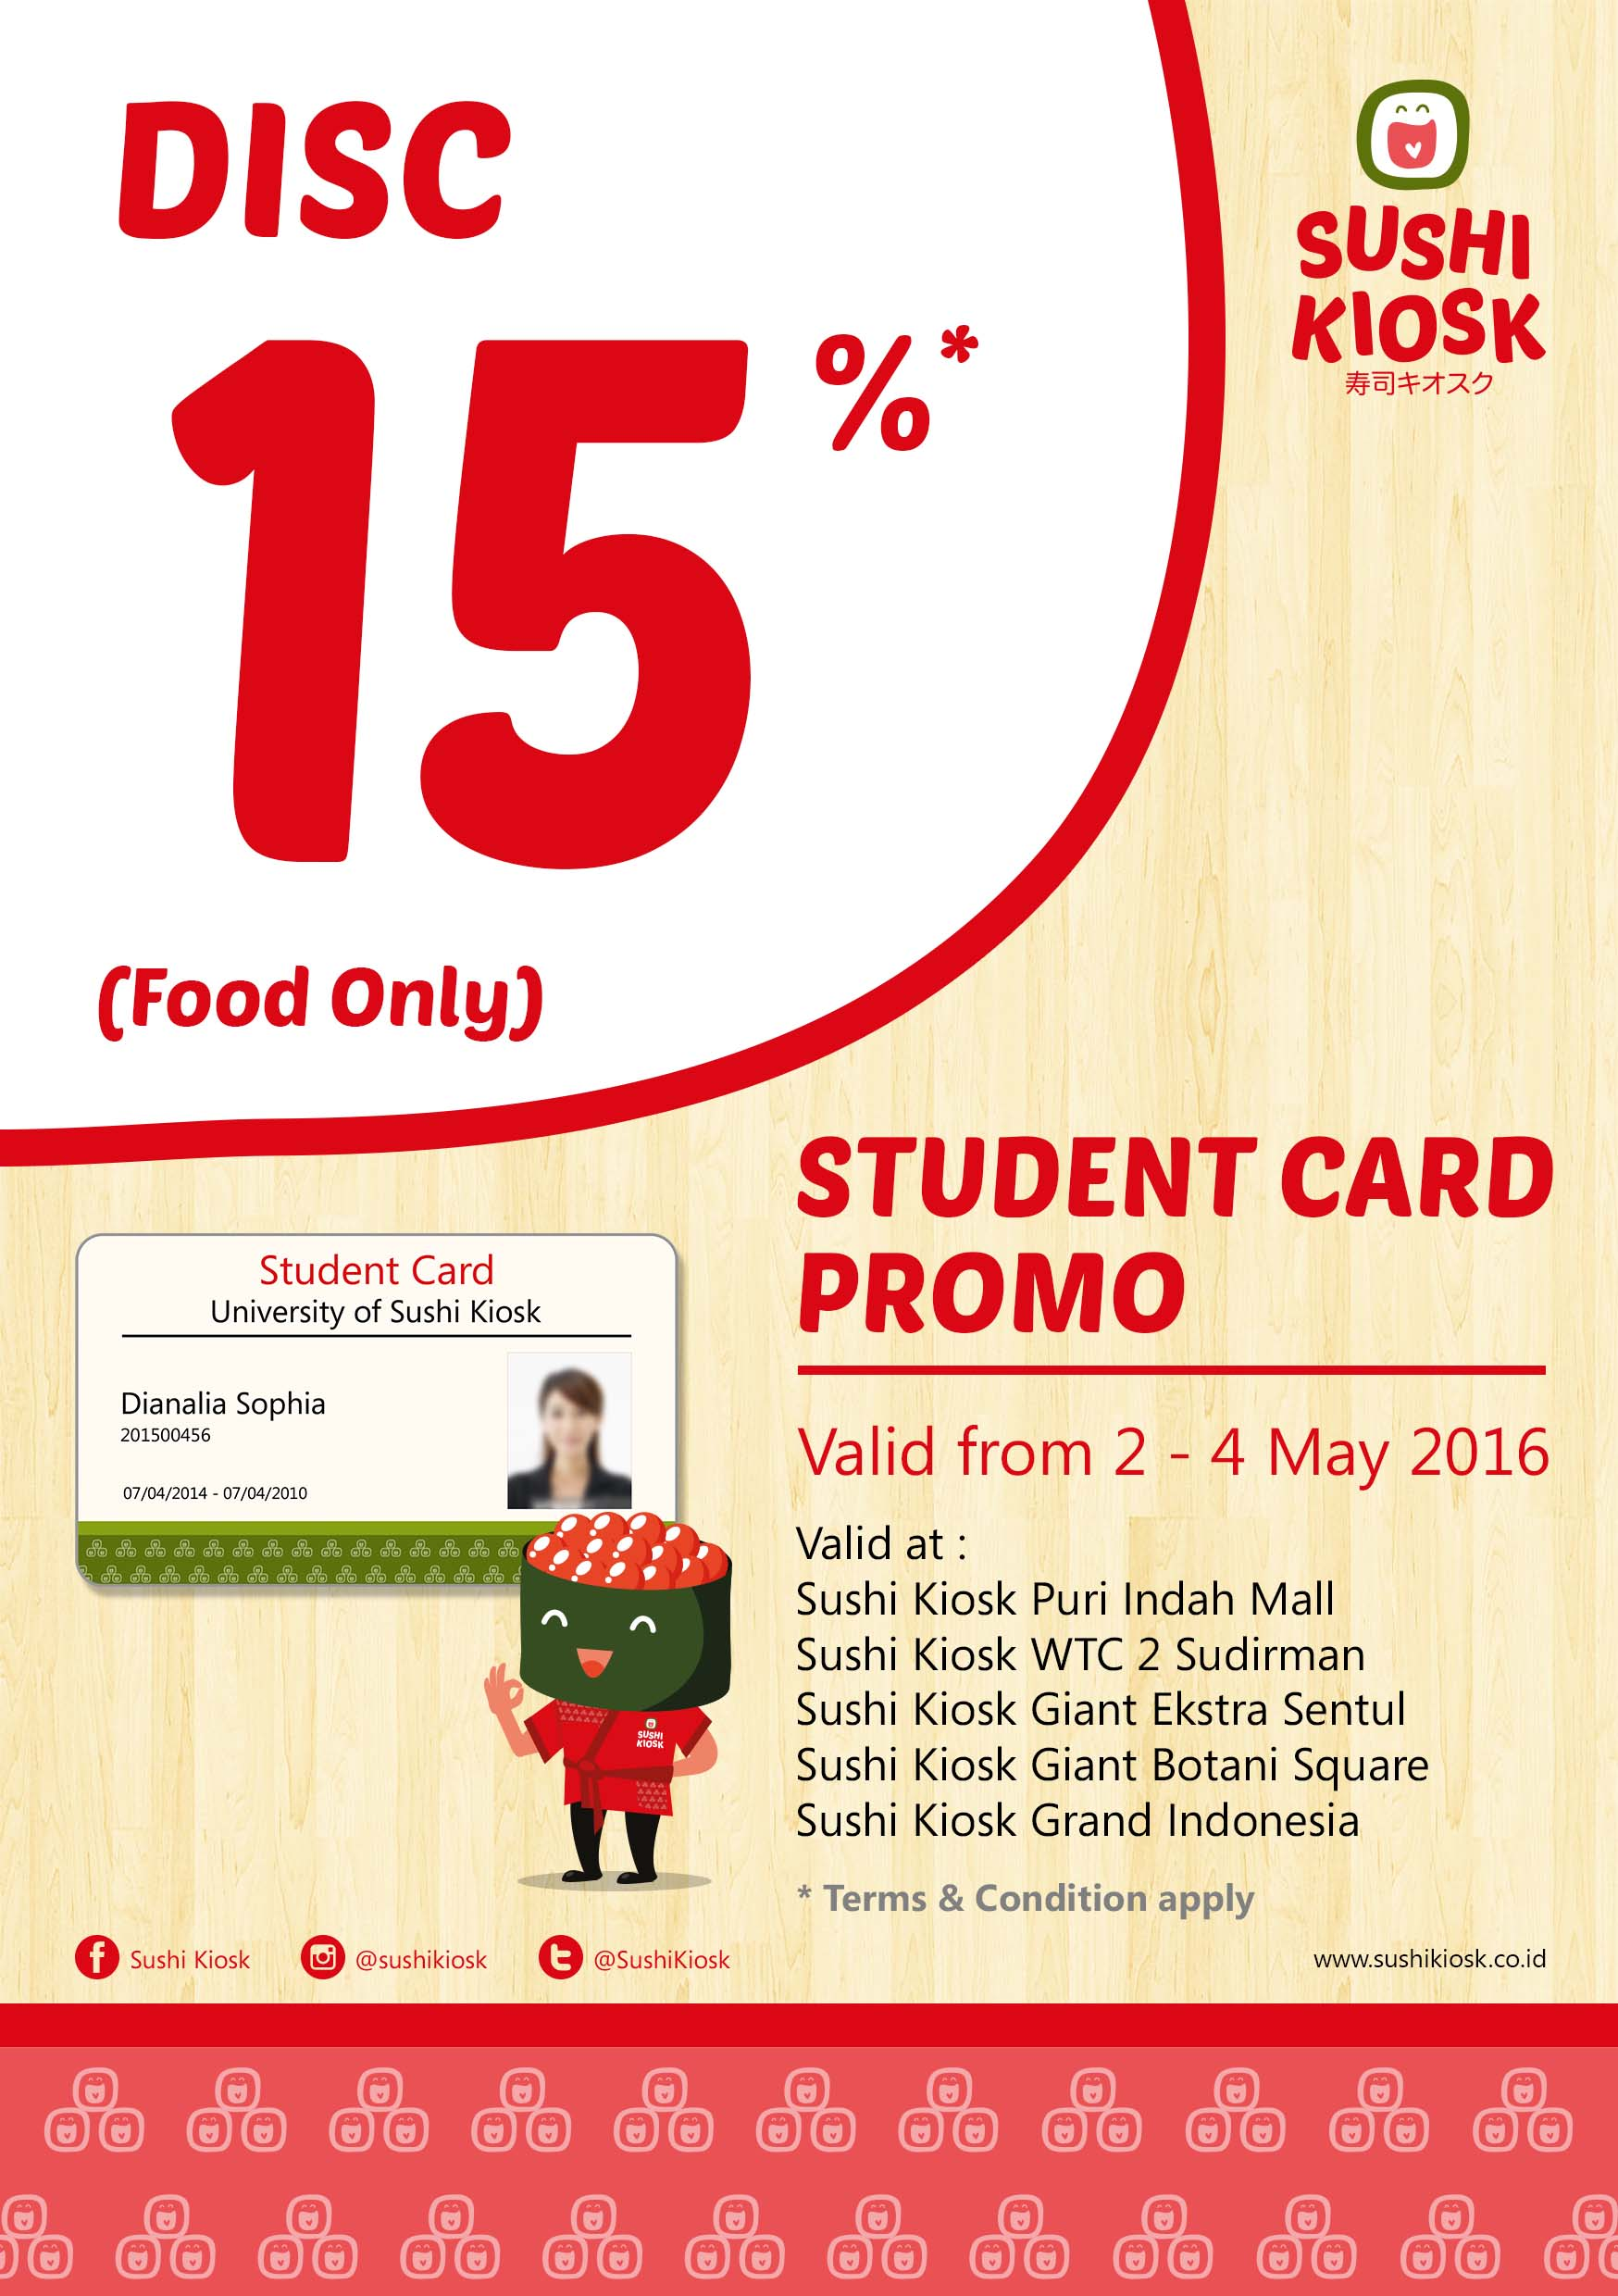 Student Card Promo